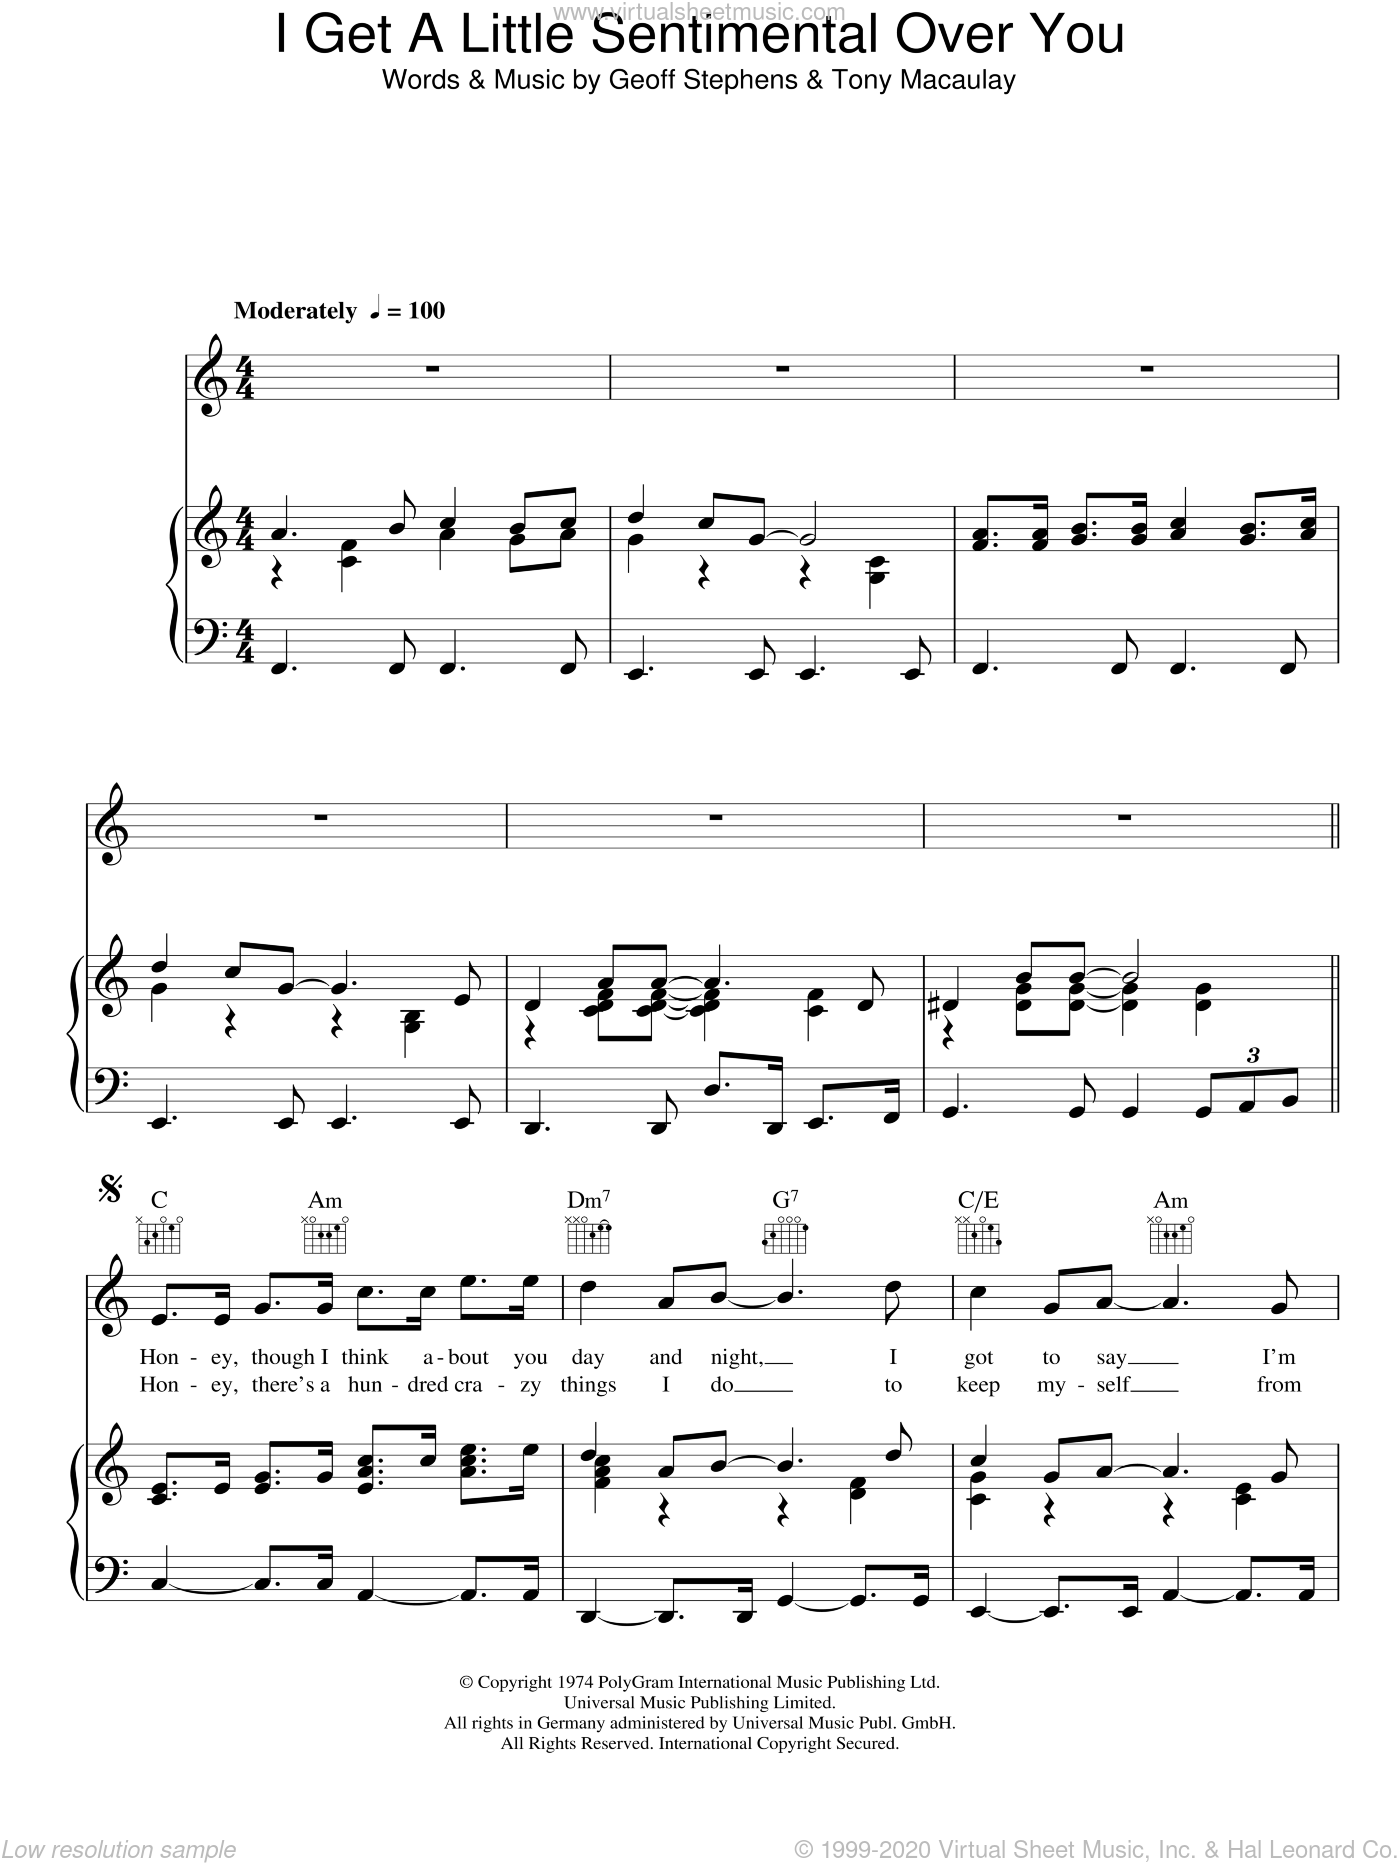 I Get A Little Sentimental Over You sheet music for voice, piano or guitar by The New Seekers, Geoff Stephens and Tony Macaulay, intermediate skill level